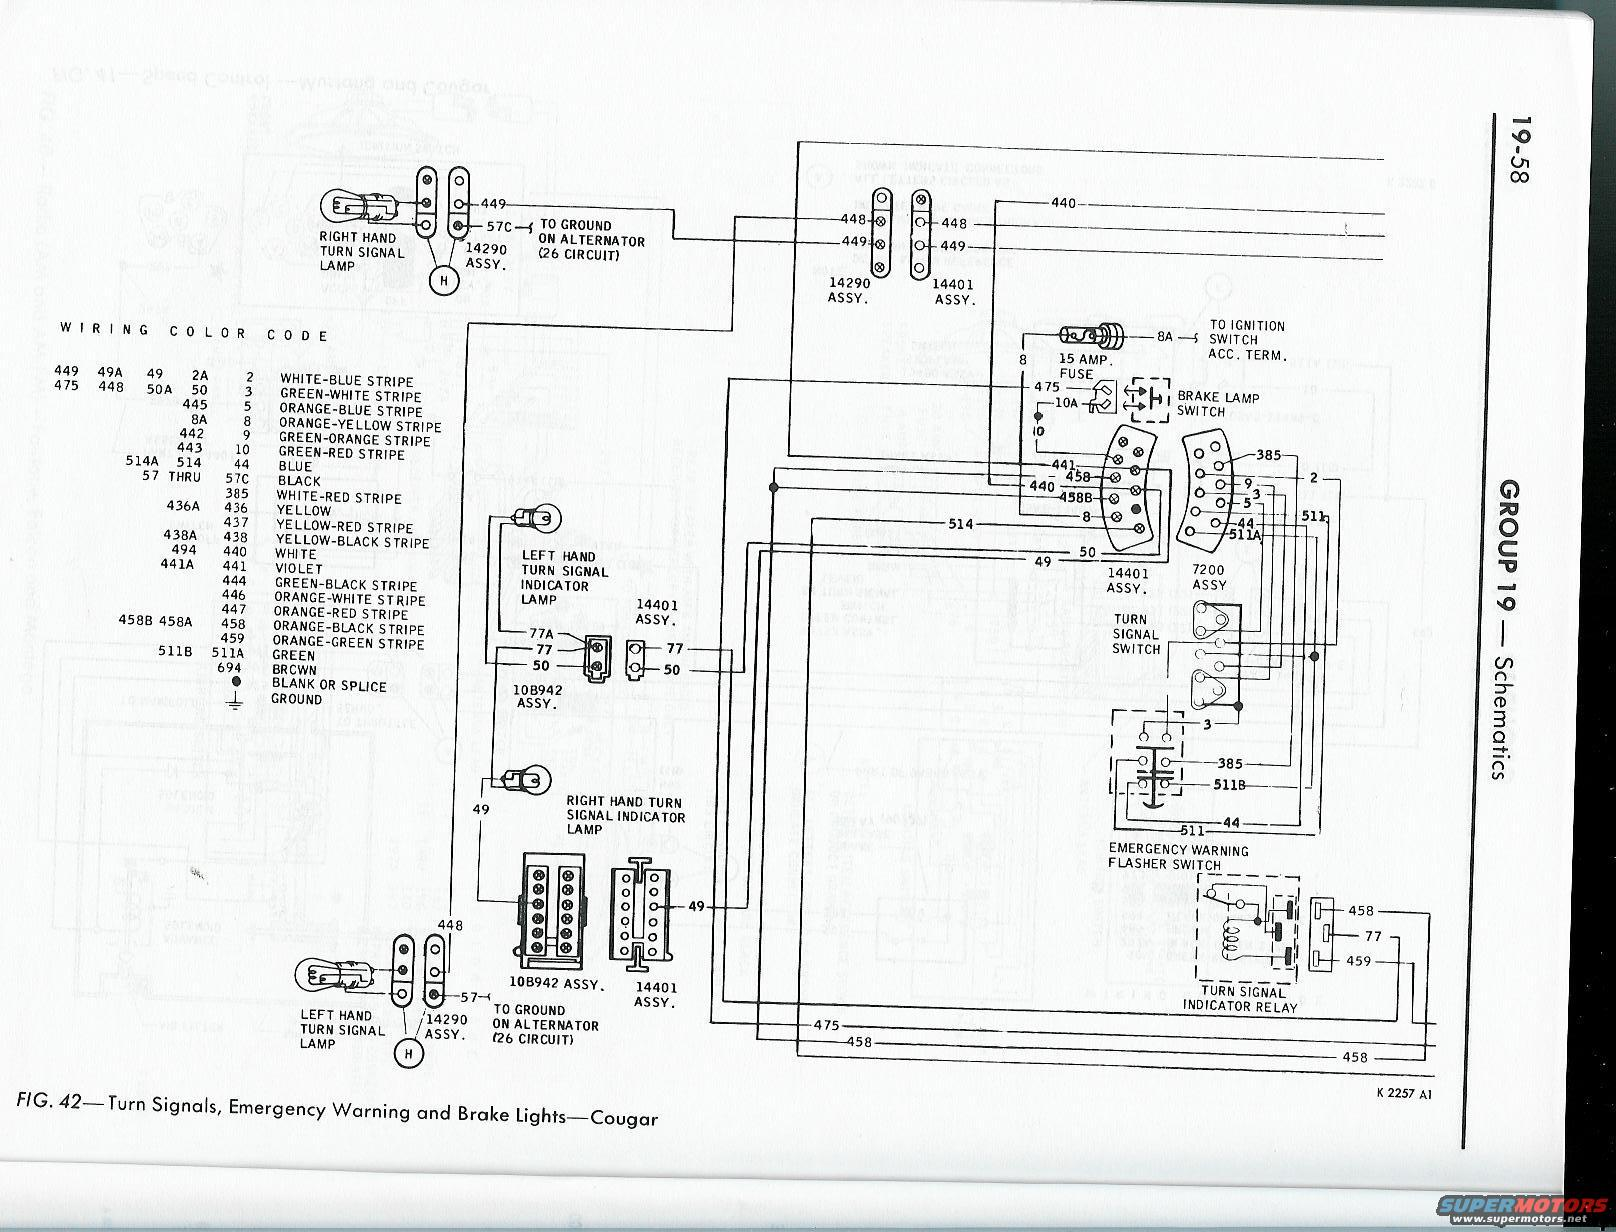 1965 mustang turn signal flasher wiring diagram  1965